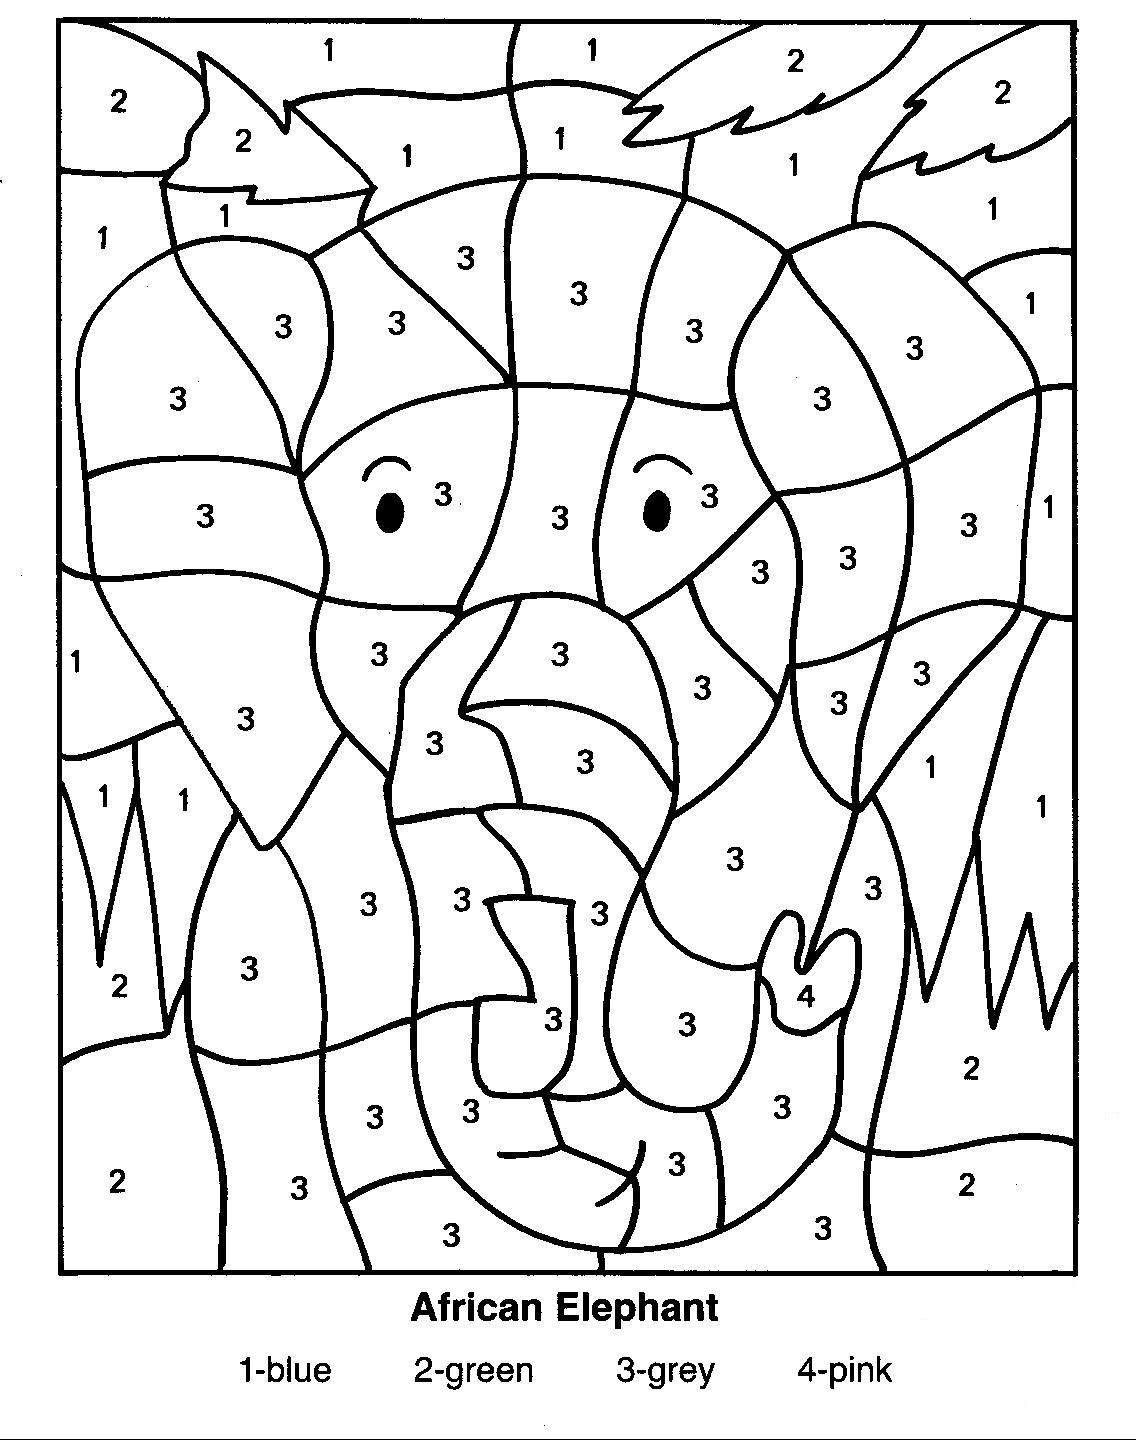 Colouring pages with colour - Color By Numbers Coloring Pages For Kids Coloring Pages Pictures Free Printable Coloring Pages For A Variety Themes That You Can Print Out And Color